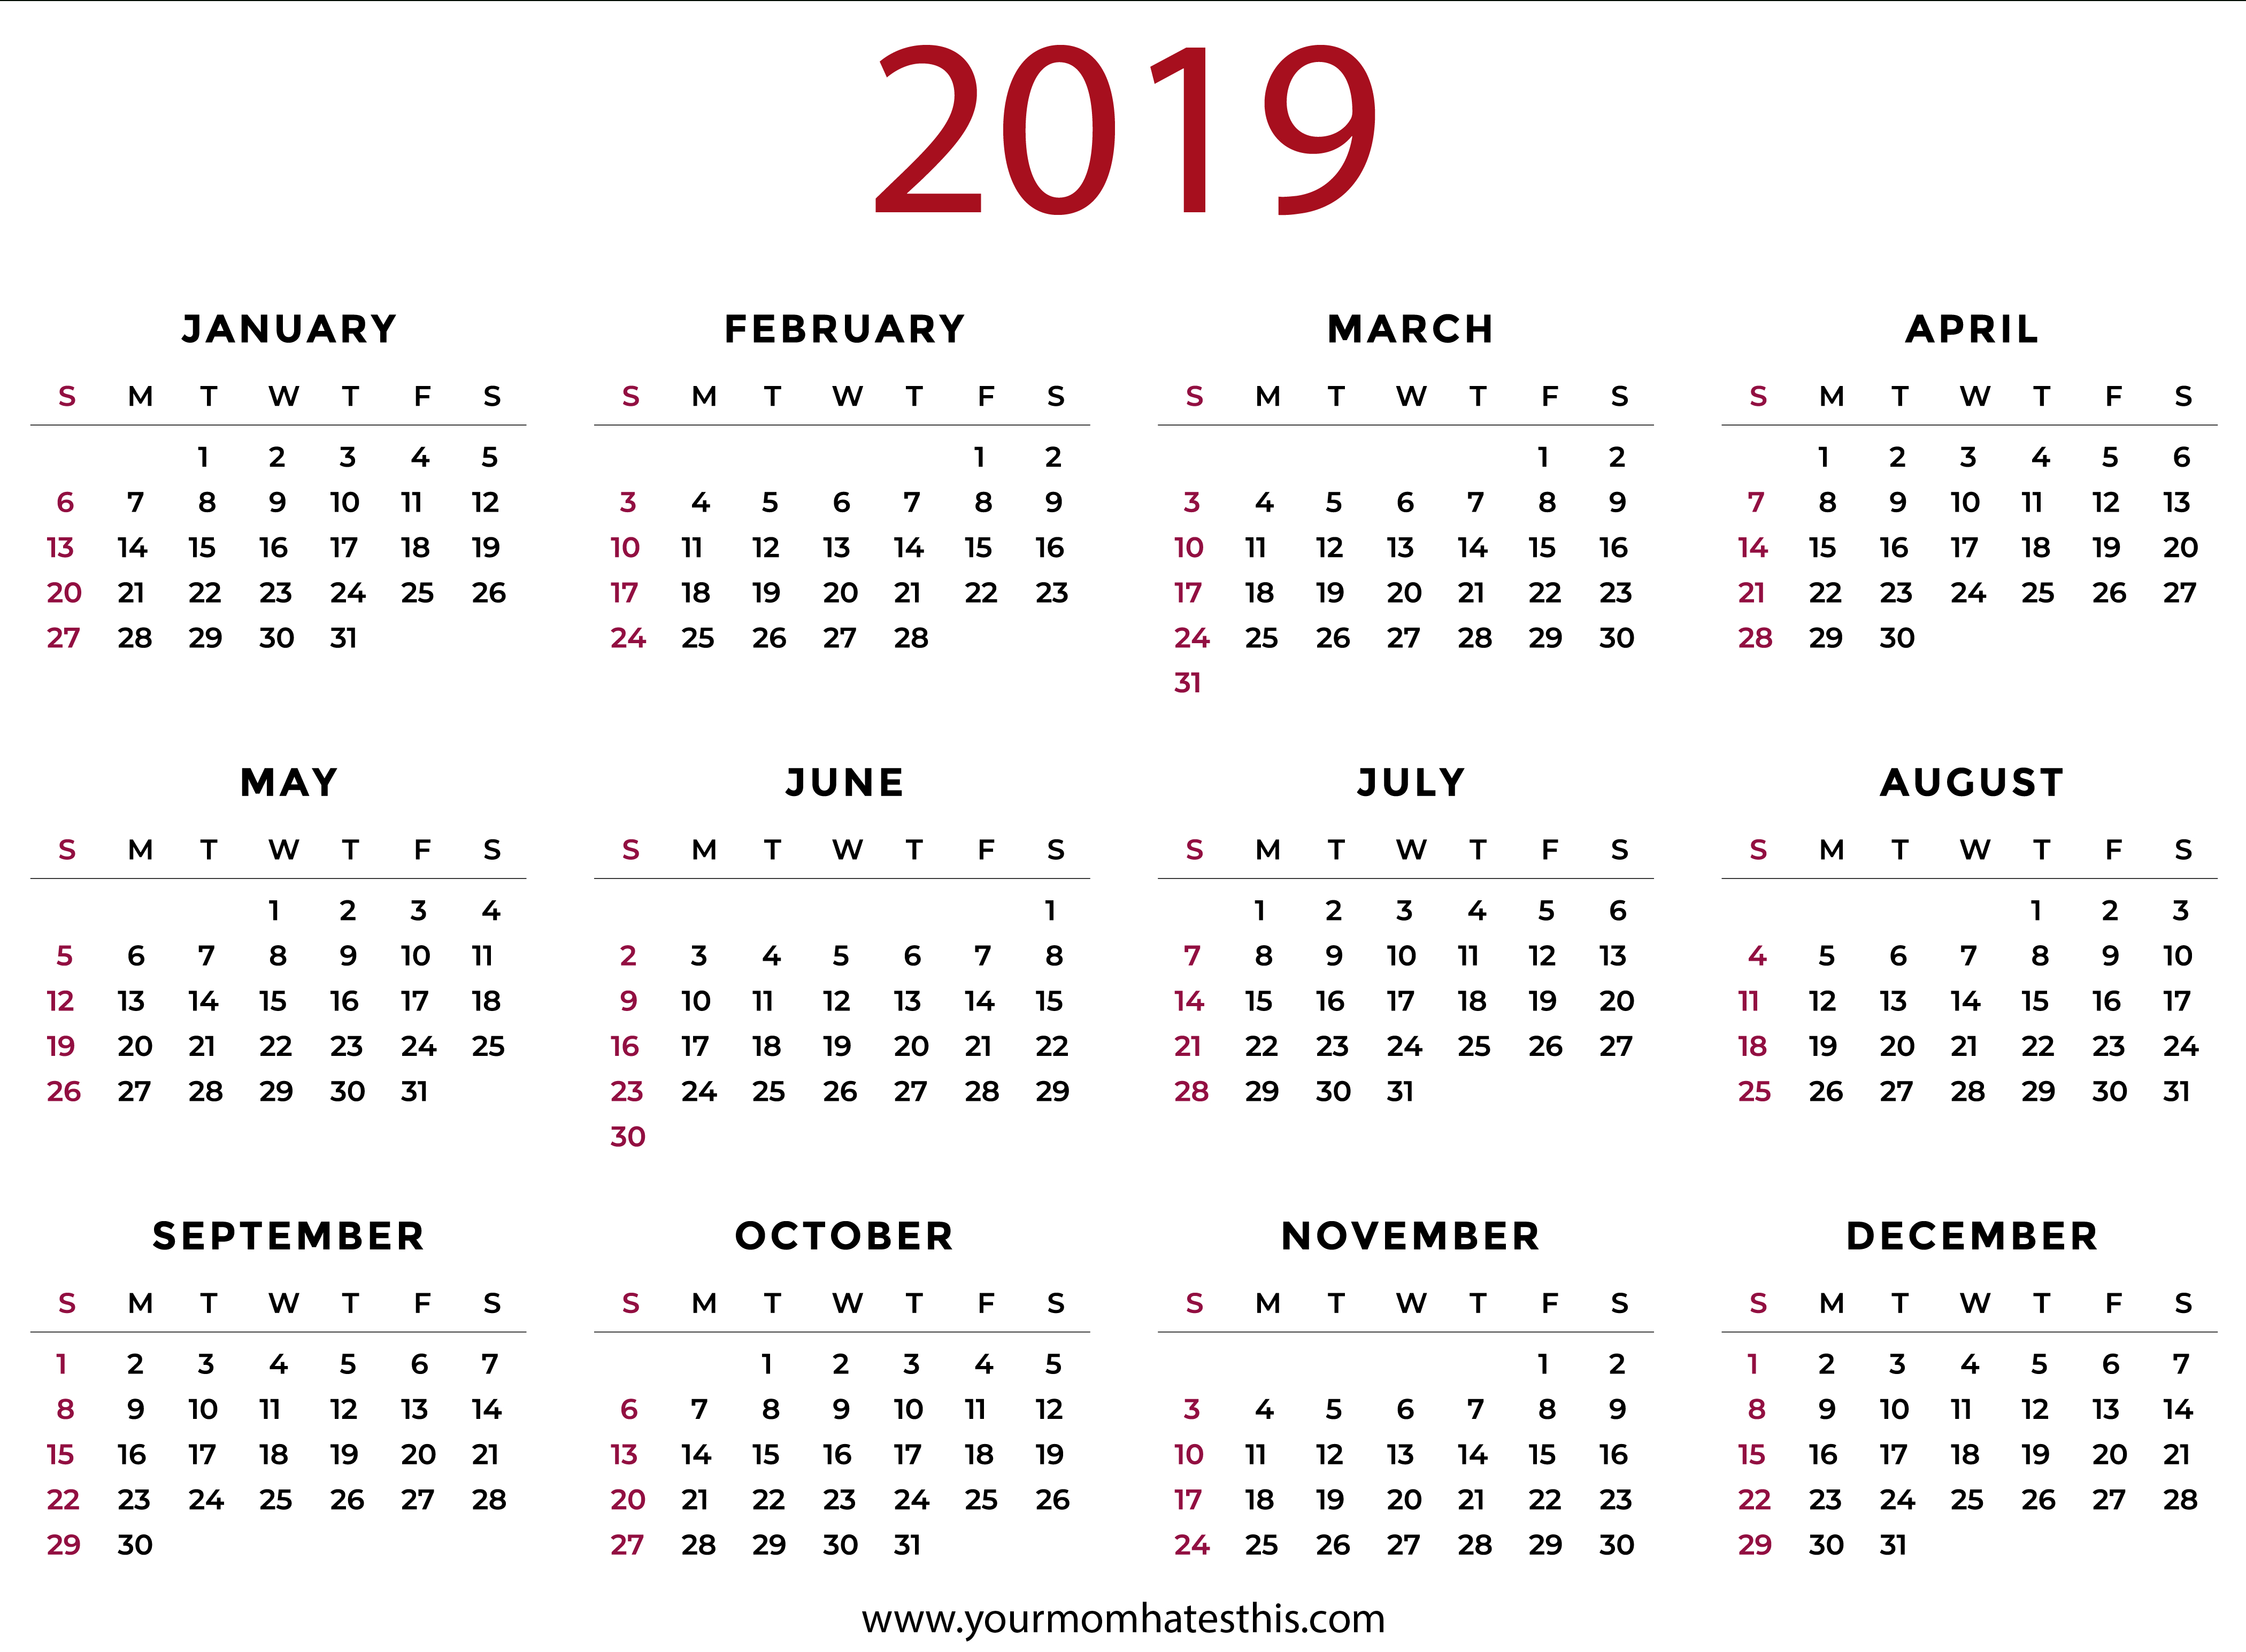 2019 Calendars Download Pdf Templates Calendar Of 2019 Pdf